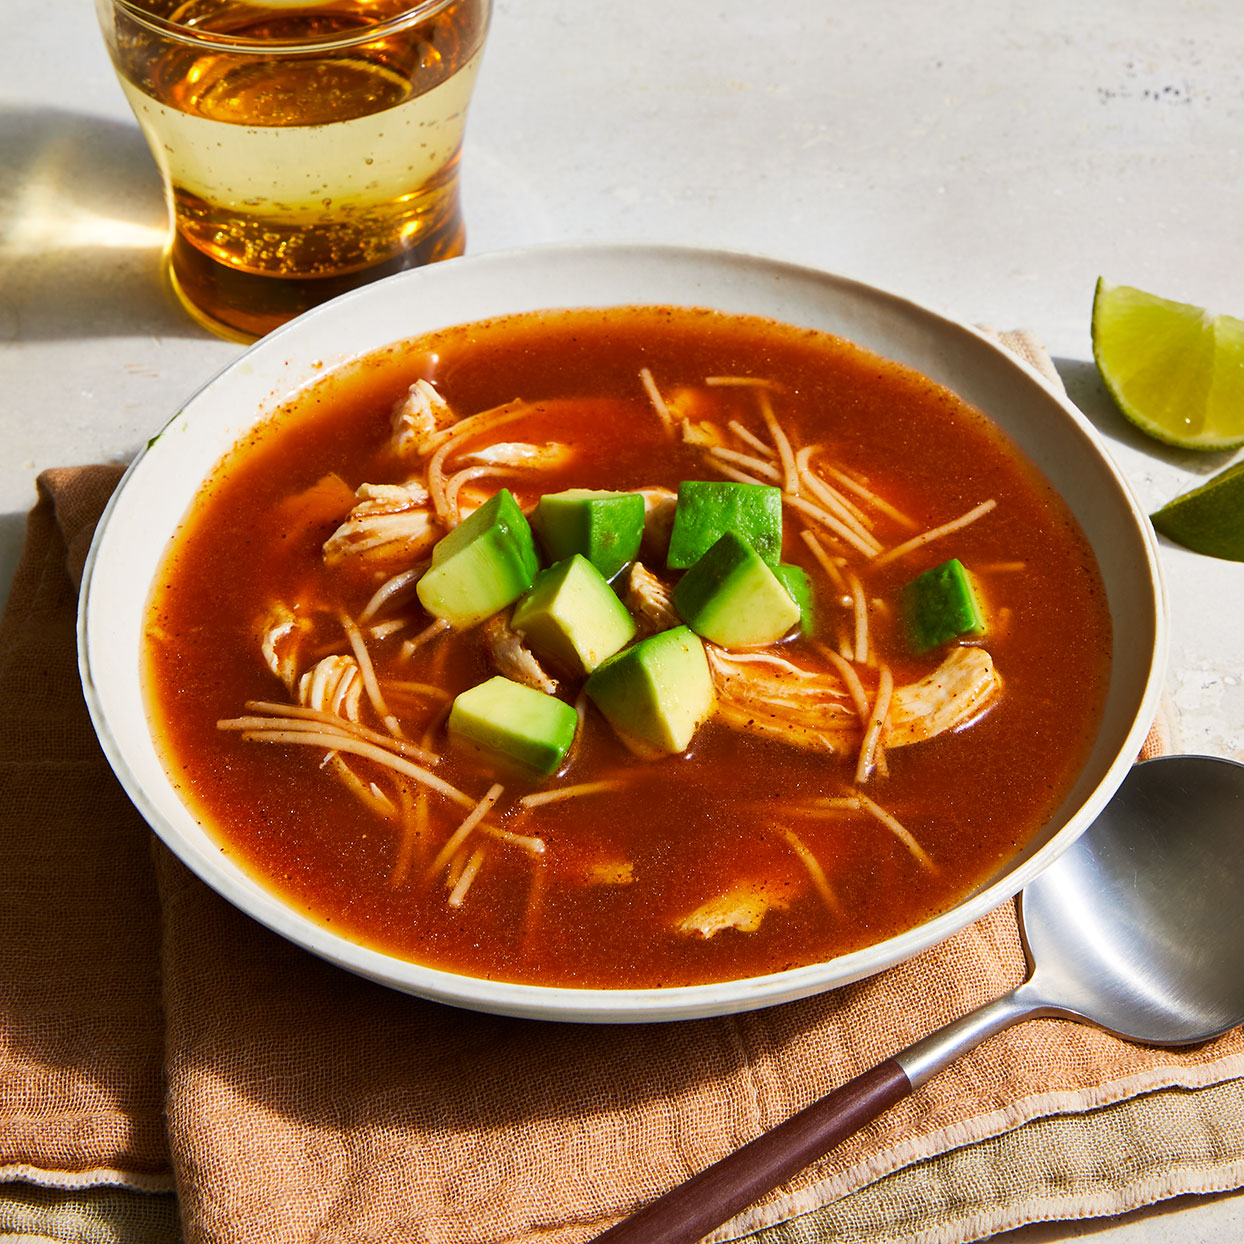 Sopa de Fideos (Chicken Noodle Soup with Sofrito)